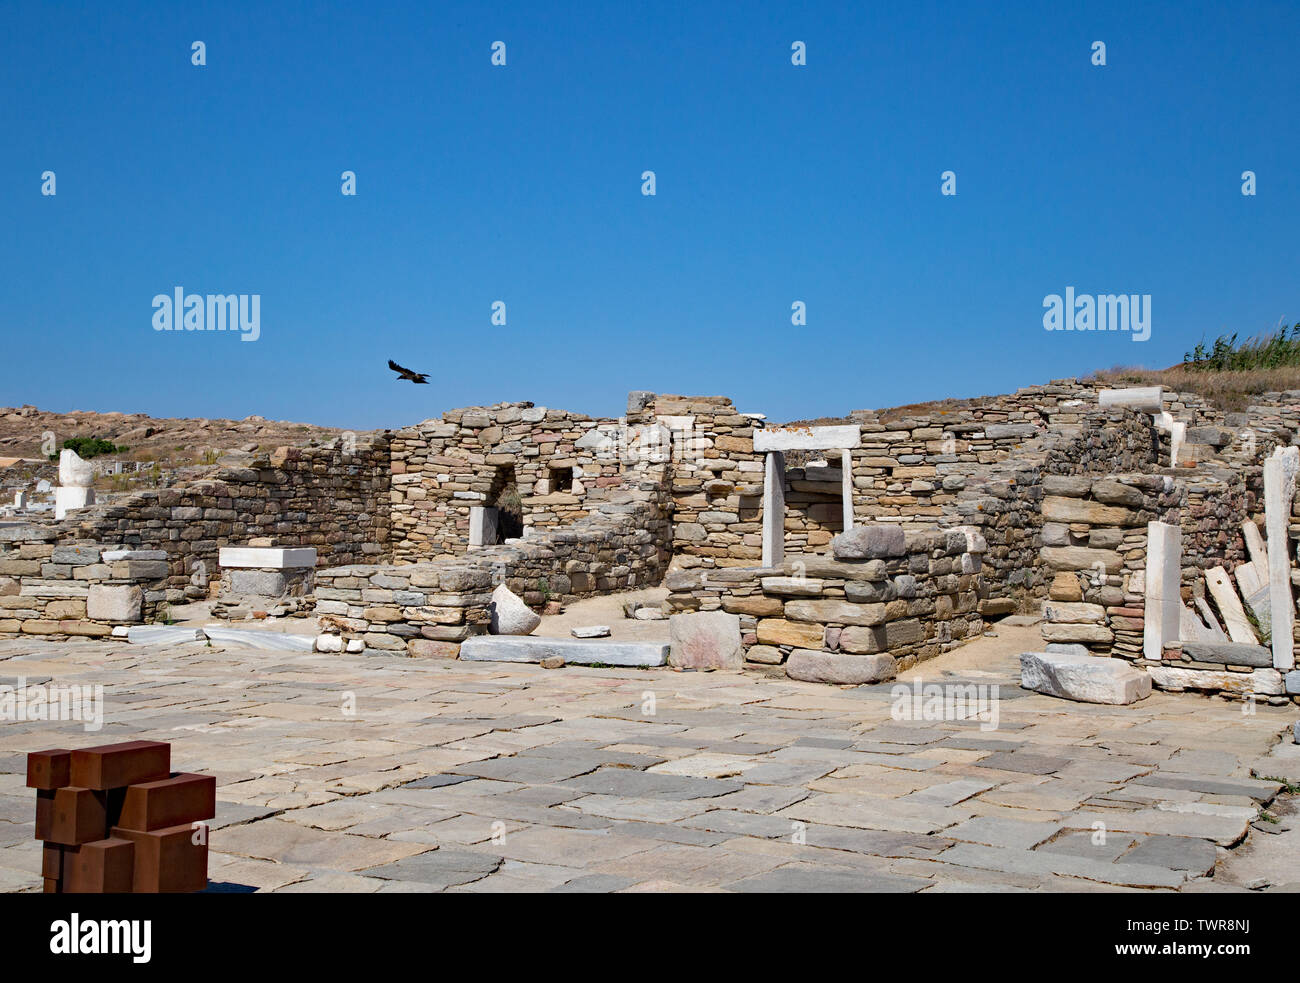 The island of Delos off the coast of Mykonos is a historical port and trading city. Stock Photo